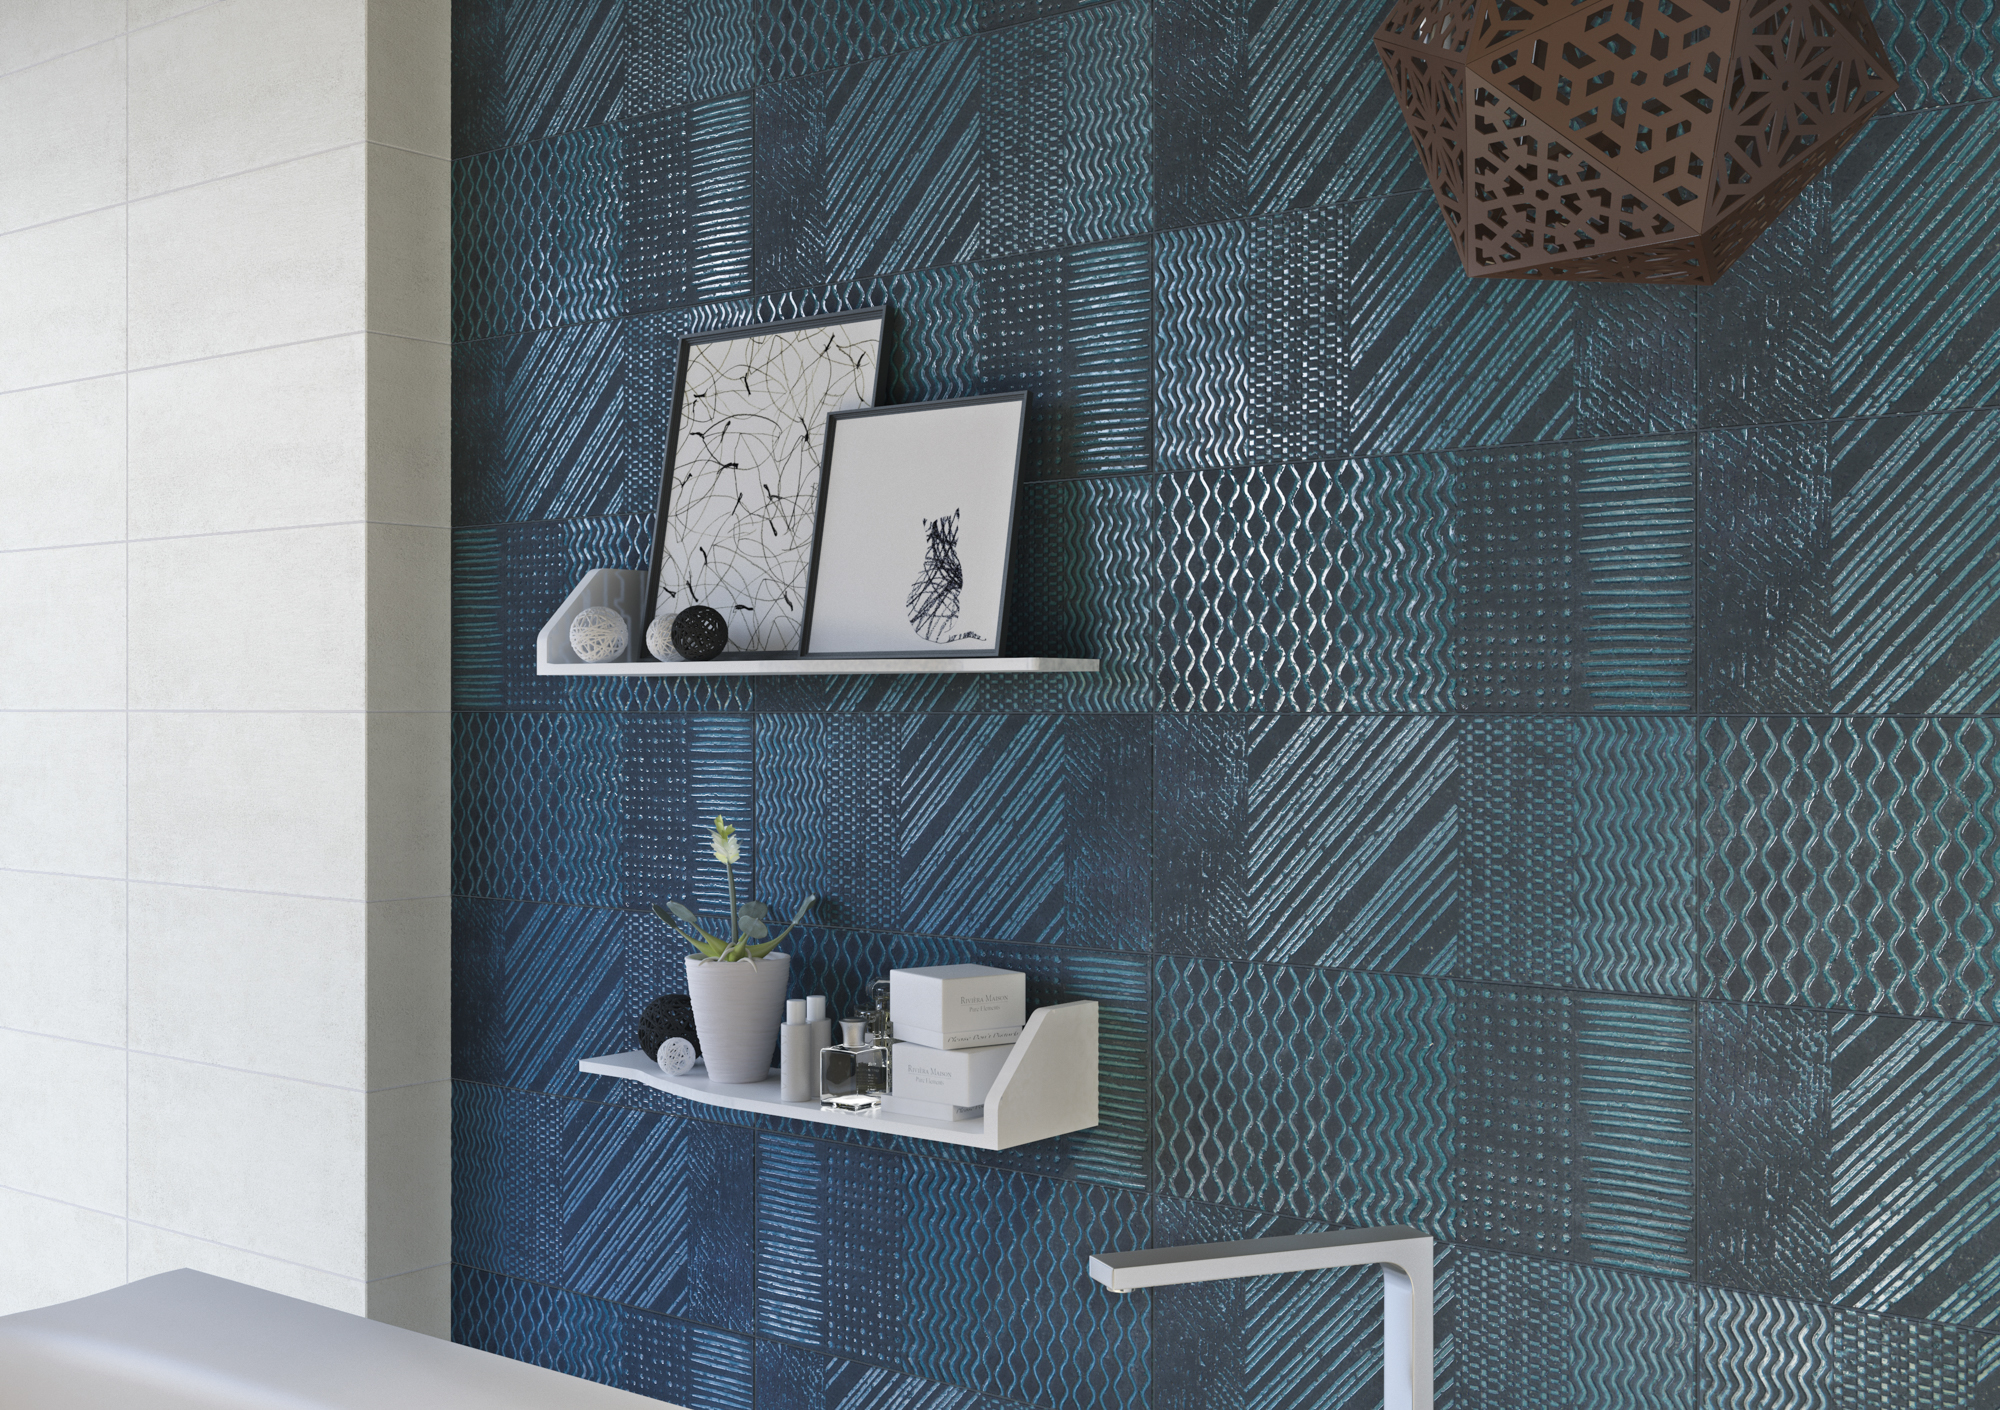 Naxos Raku Ceramic Wall Tile